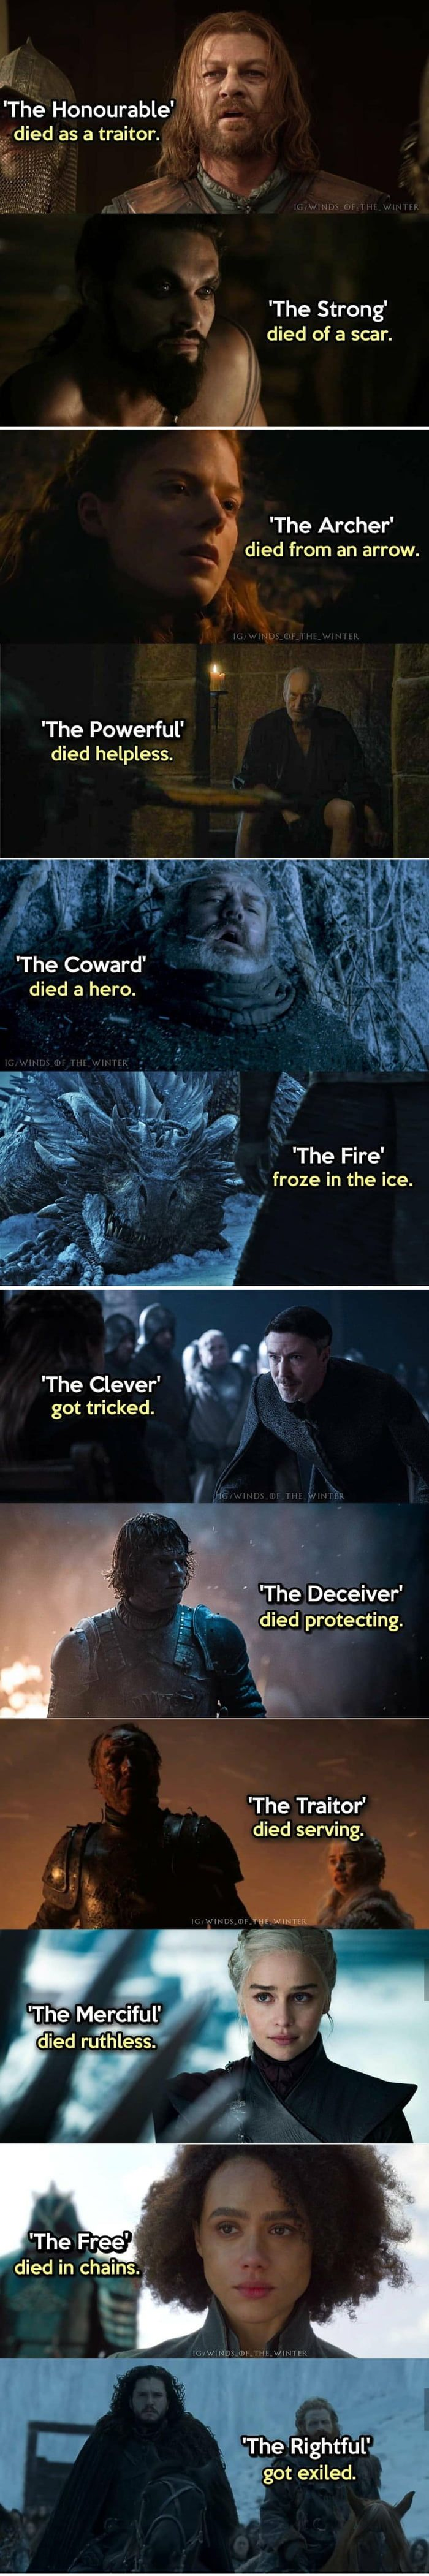 Oh Game Of Thrones.